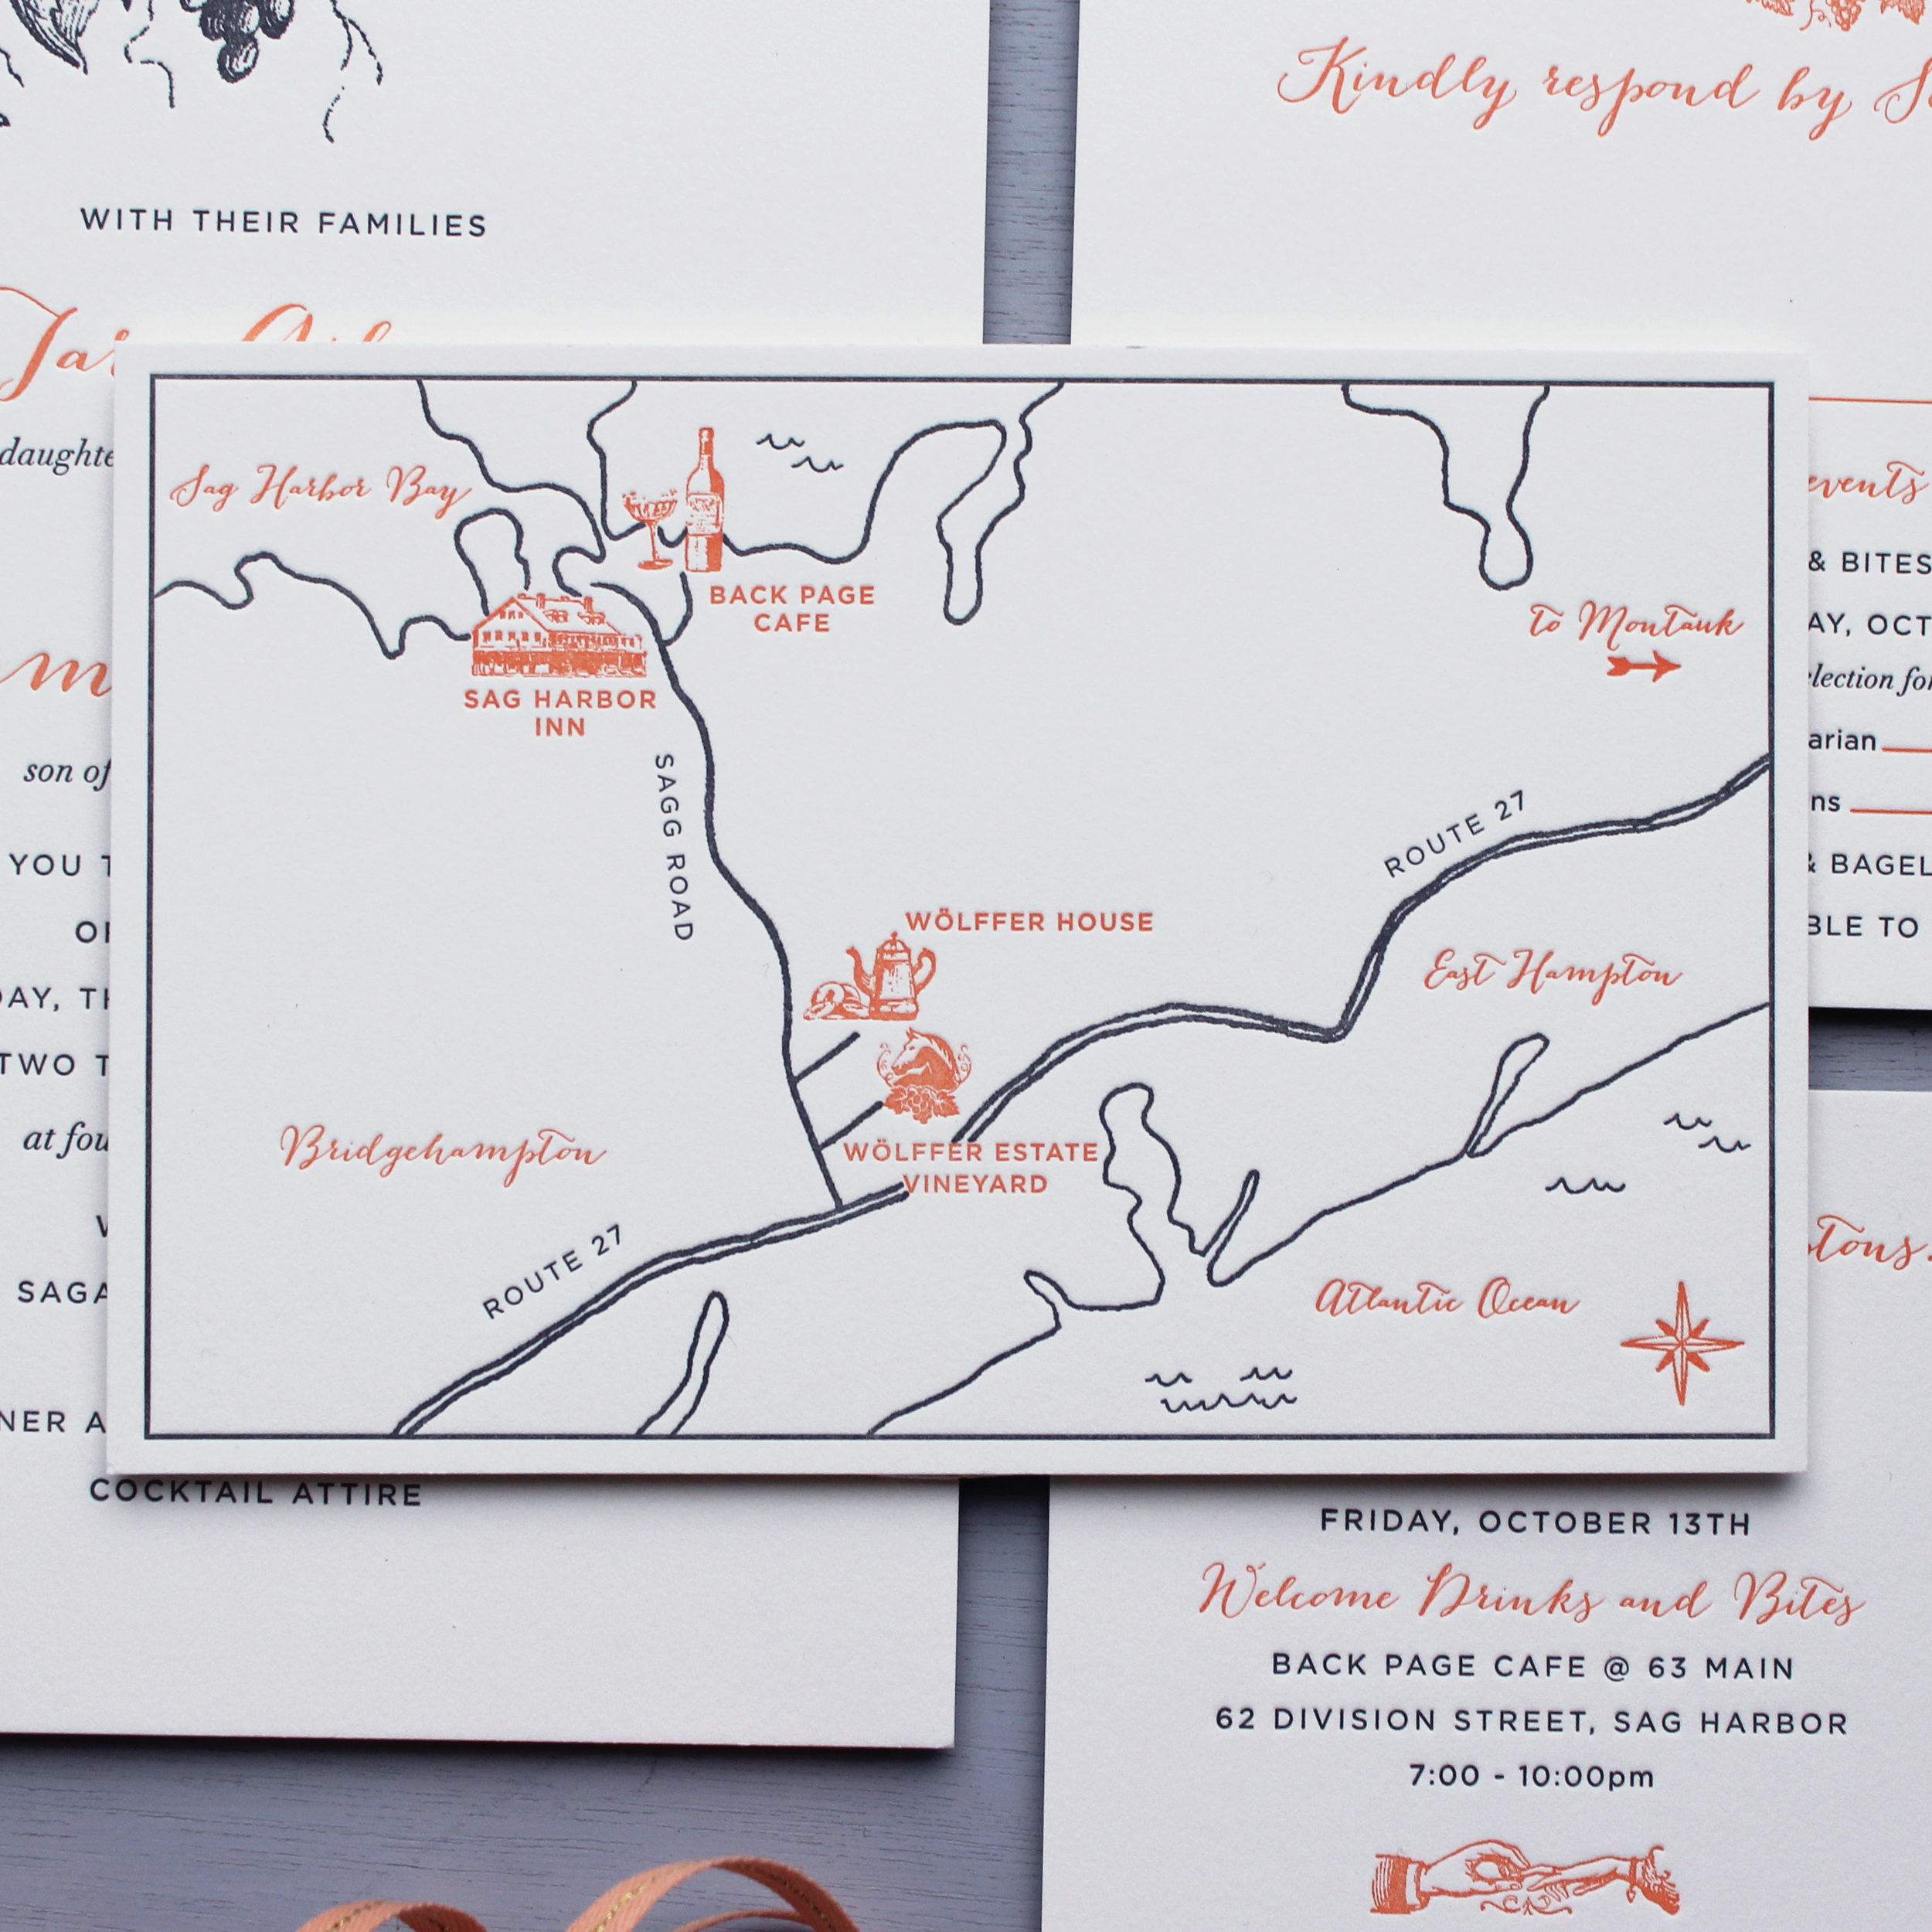 Hamptons_Vineyard_Detail_map.jpg